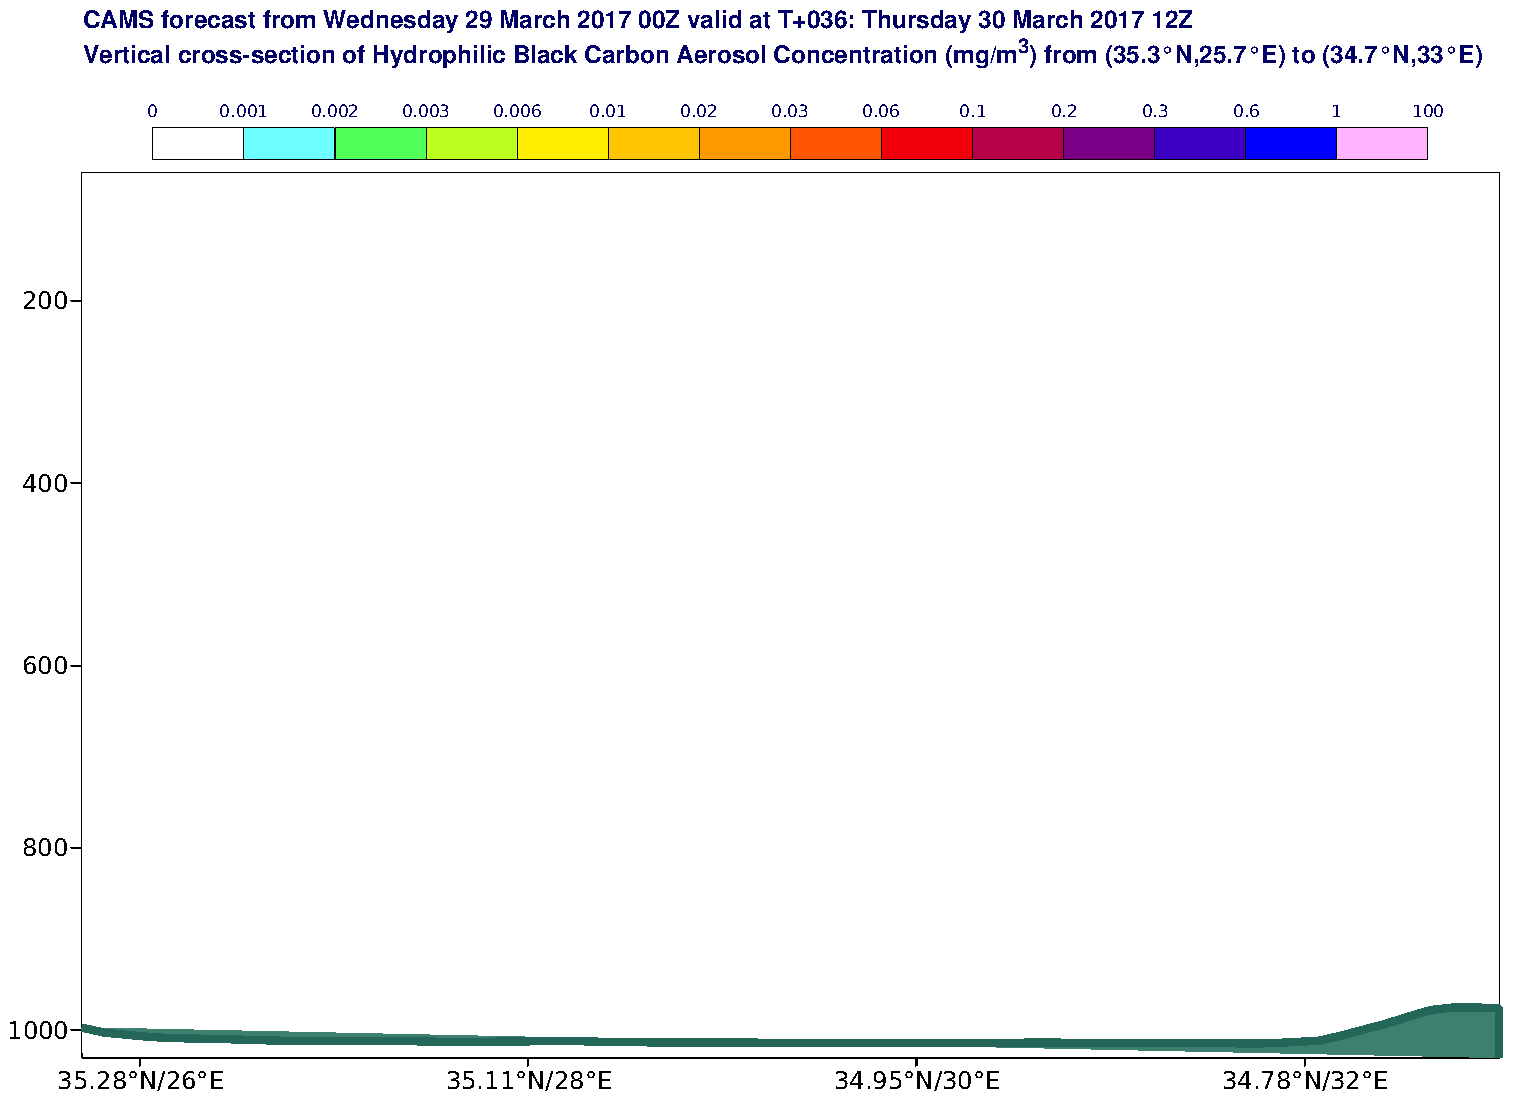 Vertical cross-section of Hydrophilic Black Carbon Aerosol Concentration (mg/m3) valid at T36 - 2017-03-30 12:00